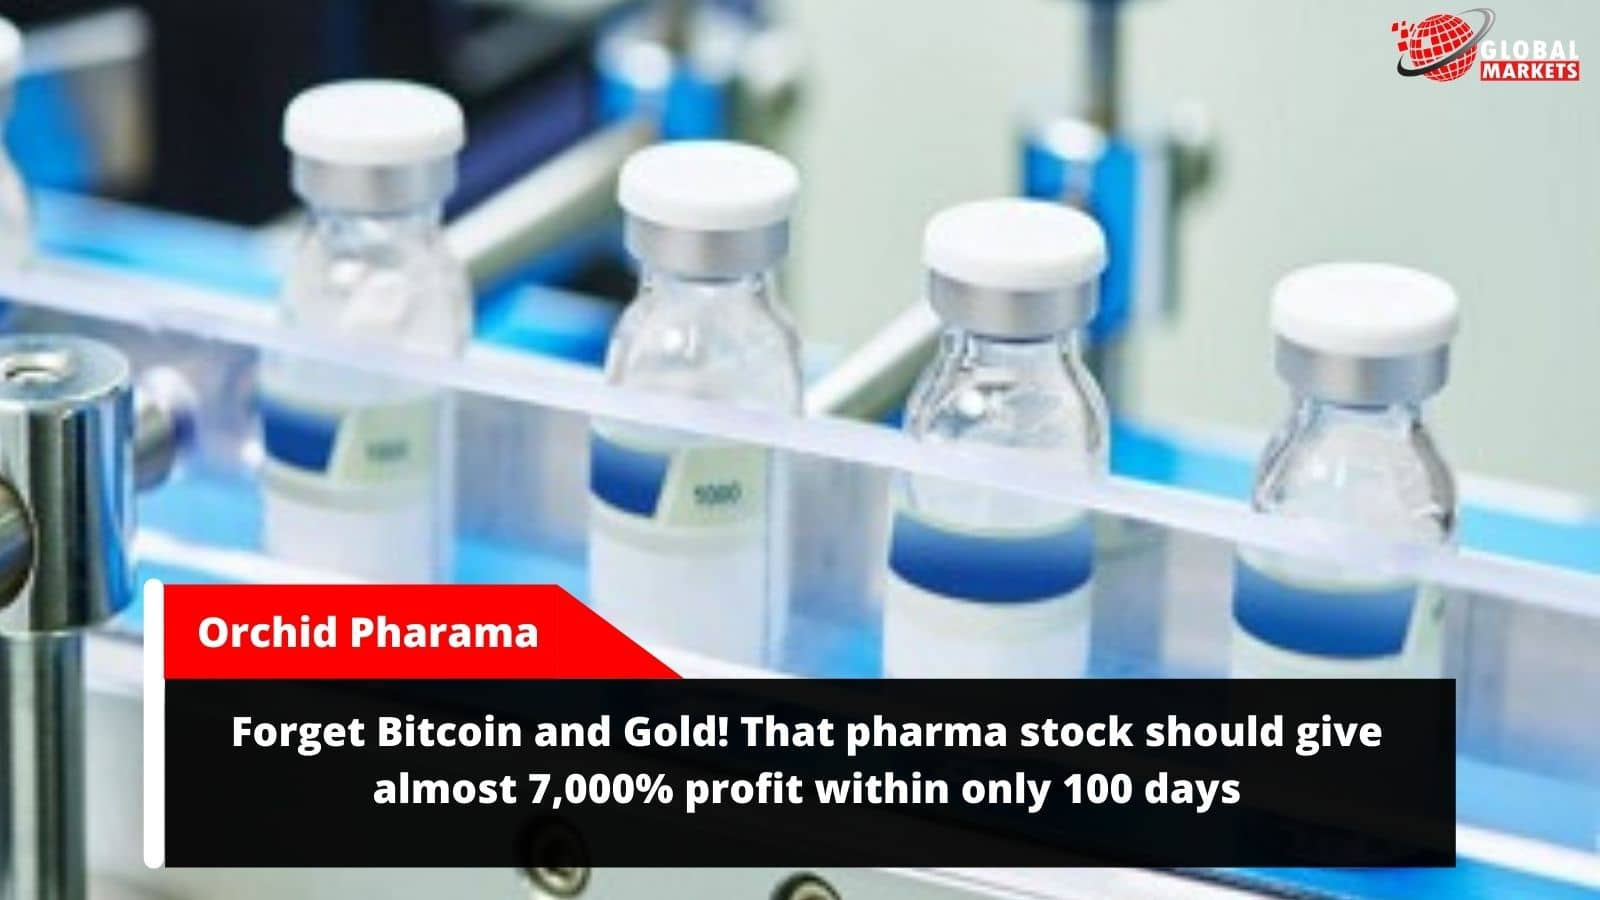 Forget Bitcoin and Gold! That pharma stock should give almost 7,000% profit within only 100 days